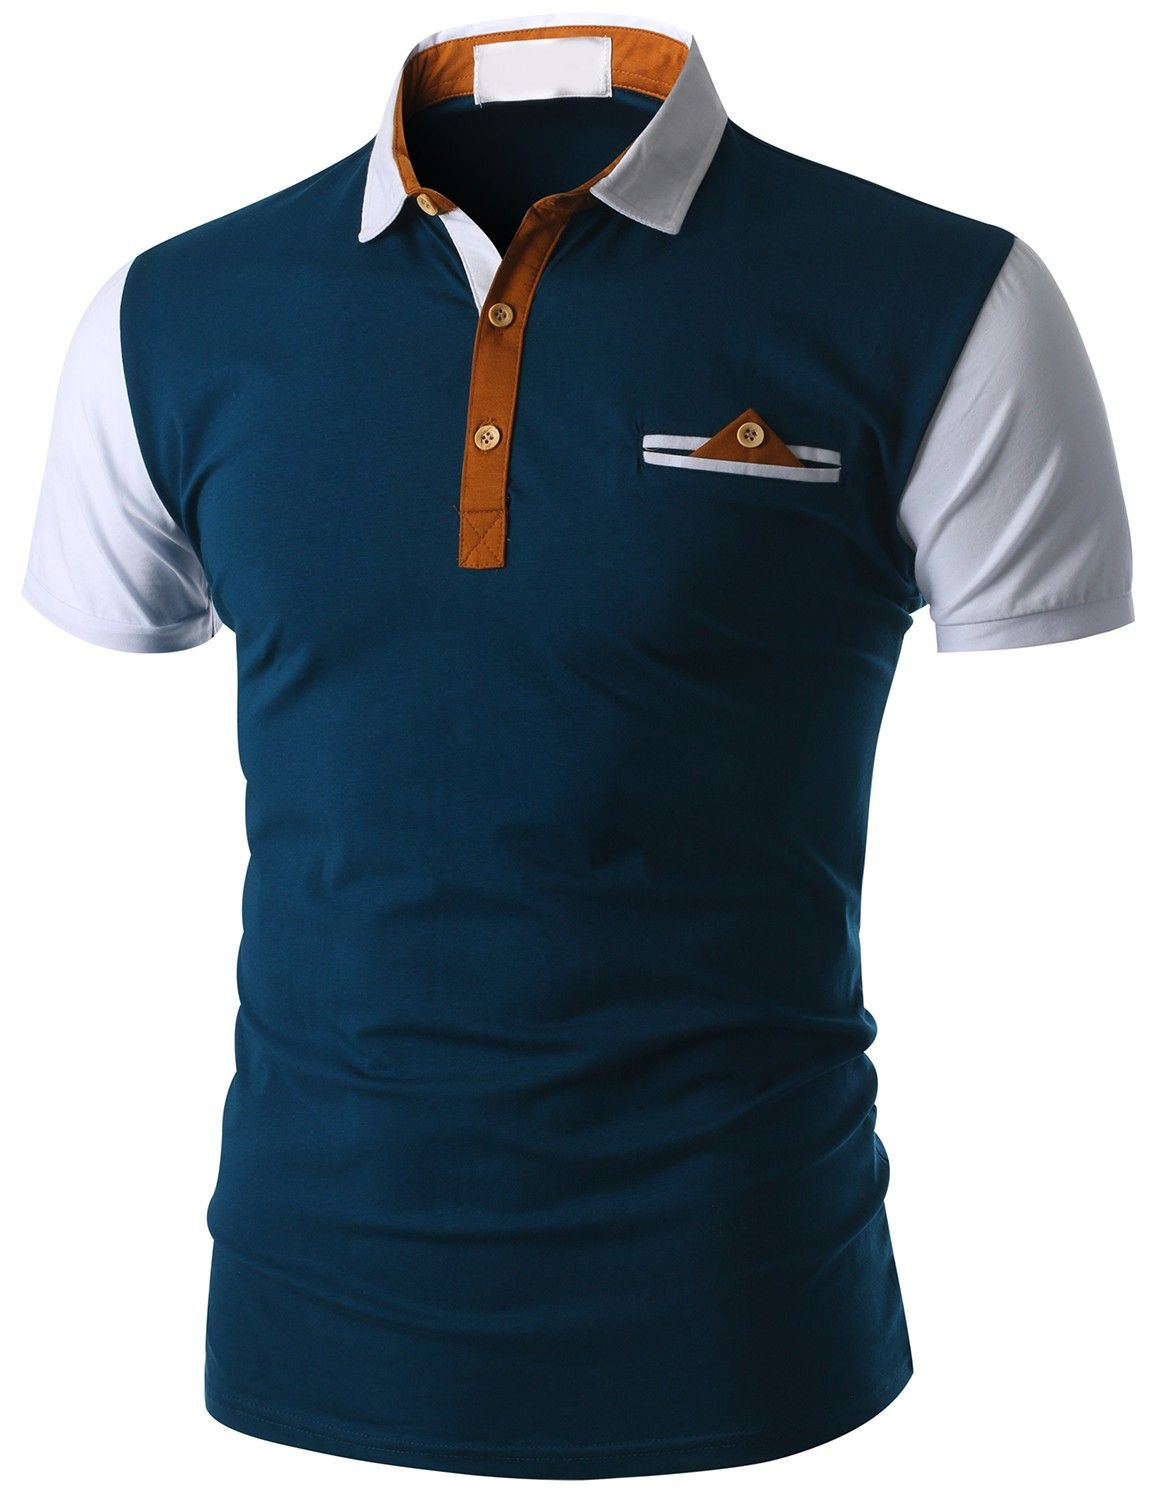 Doublju men 39 s short sleeve pocket polo shirt cmtts015 for Polo t shirts with pocket online